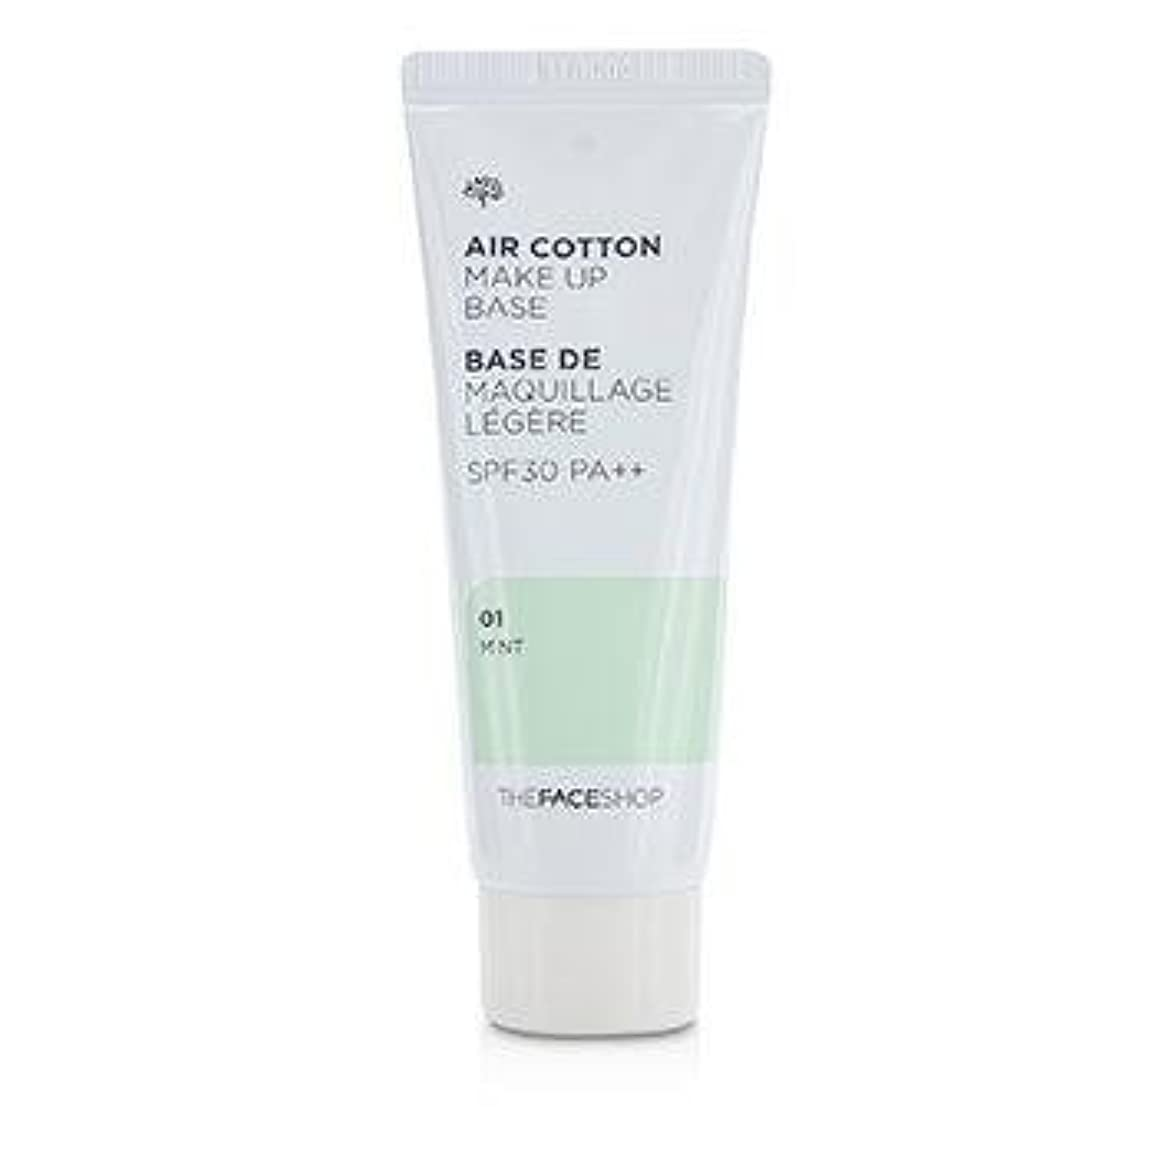 The Face Shop Air Cotton Make Up Base SPF30/PA++ 40ml #1 Mint